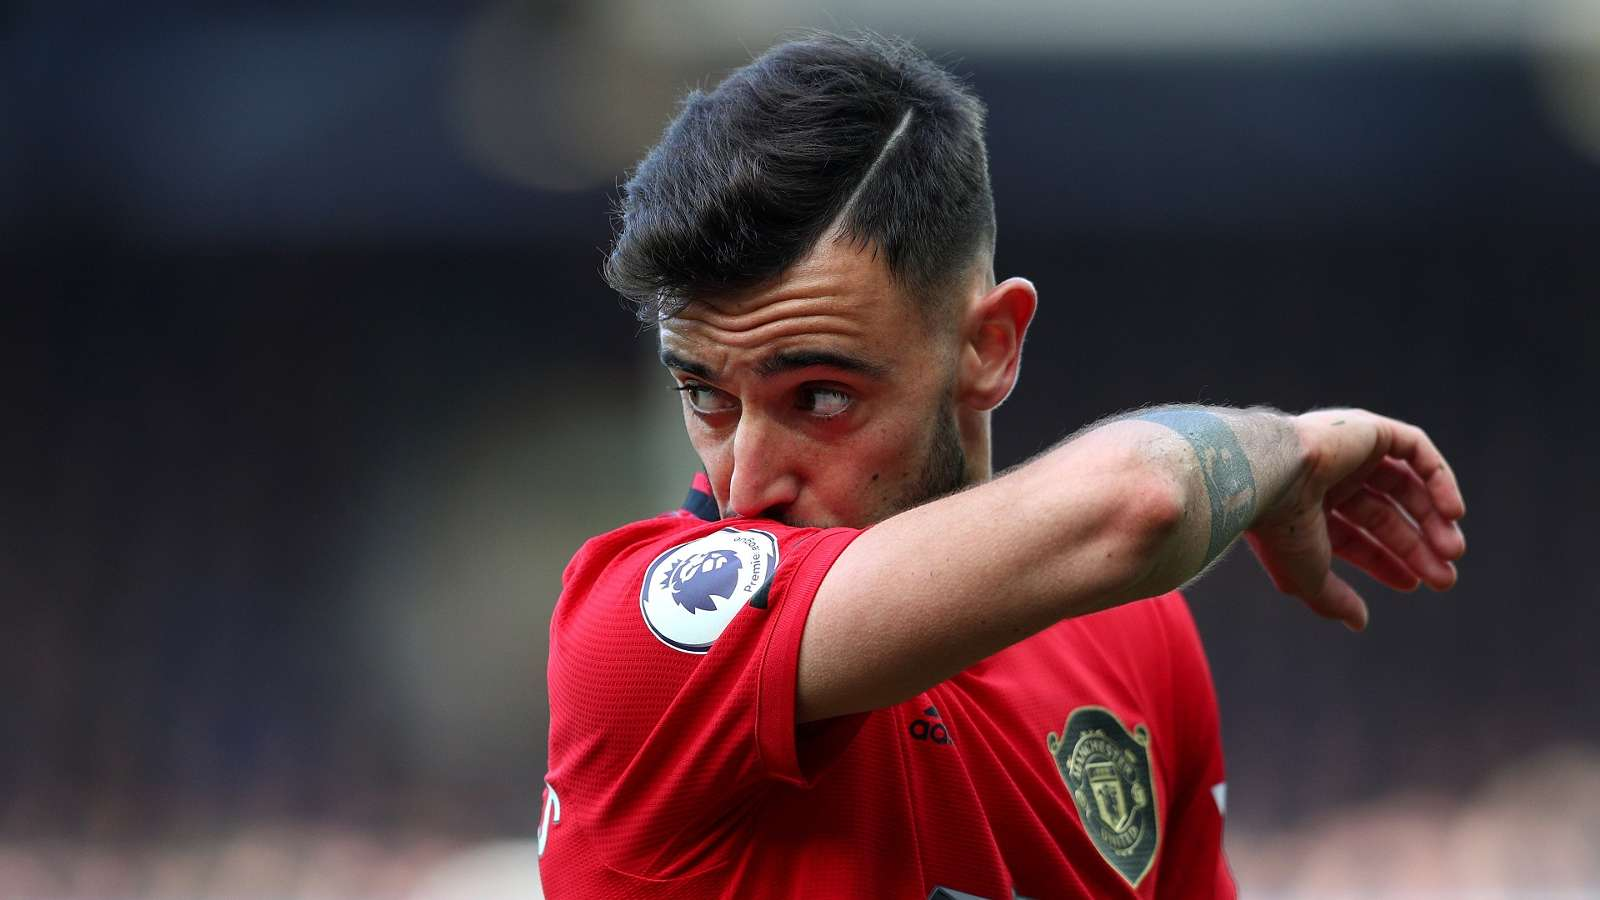 'I'm the new Veron!' - Man Utd star Bruno Fernandes shows off fresh goatee style - Bóng Đá